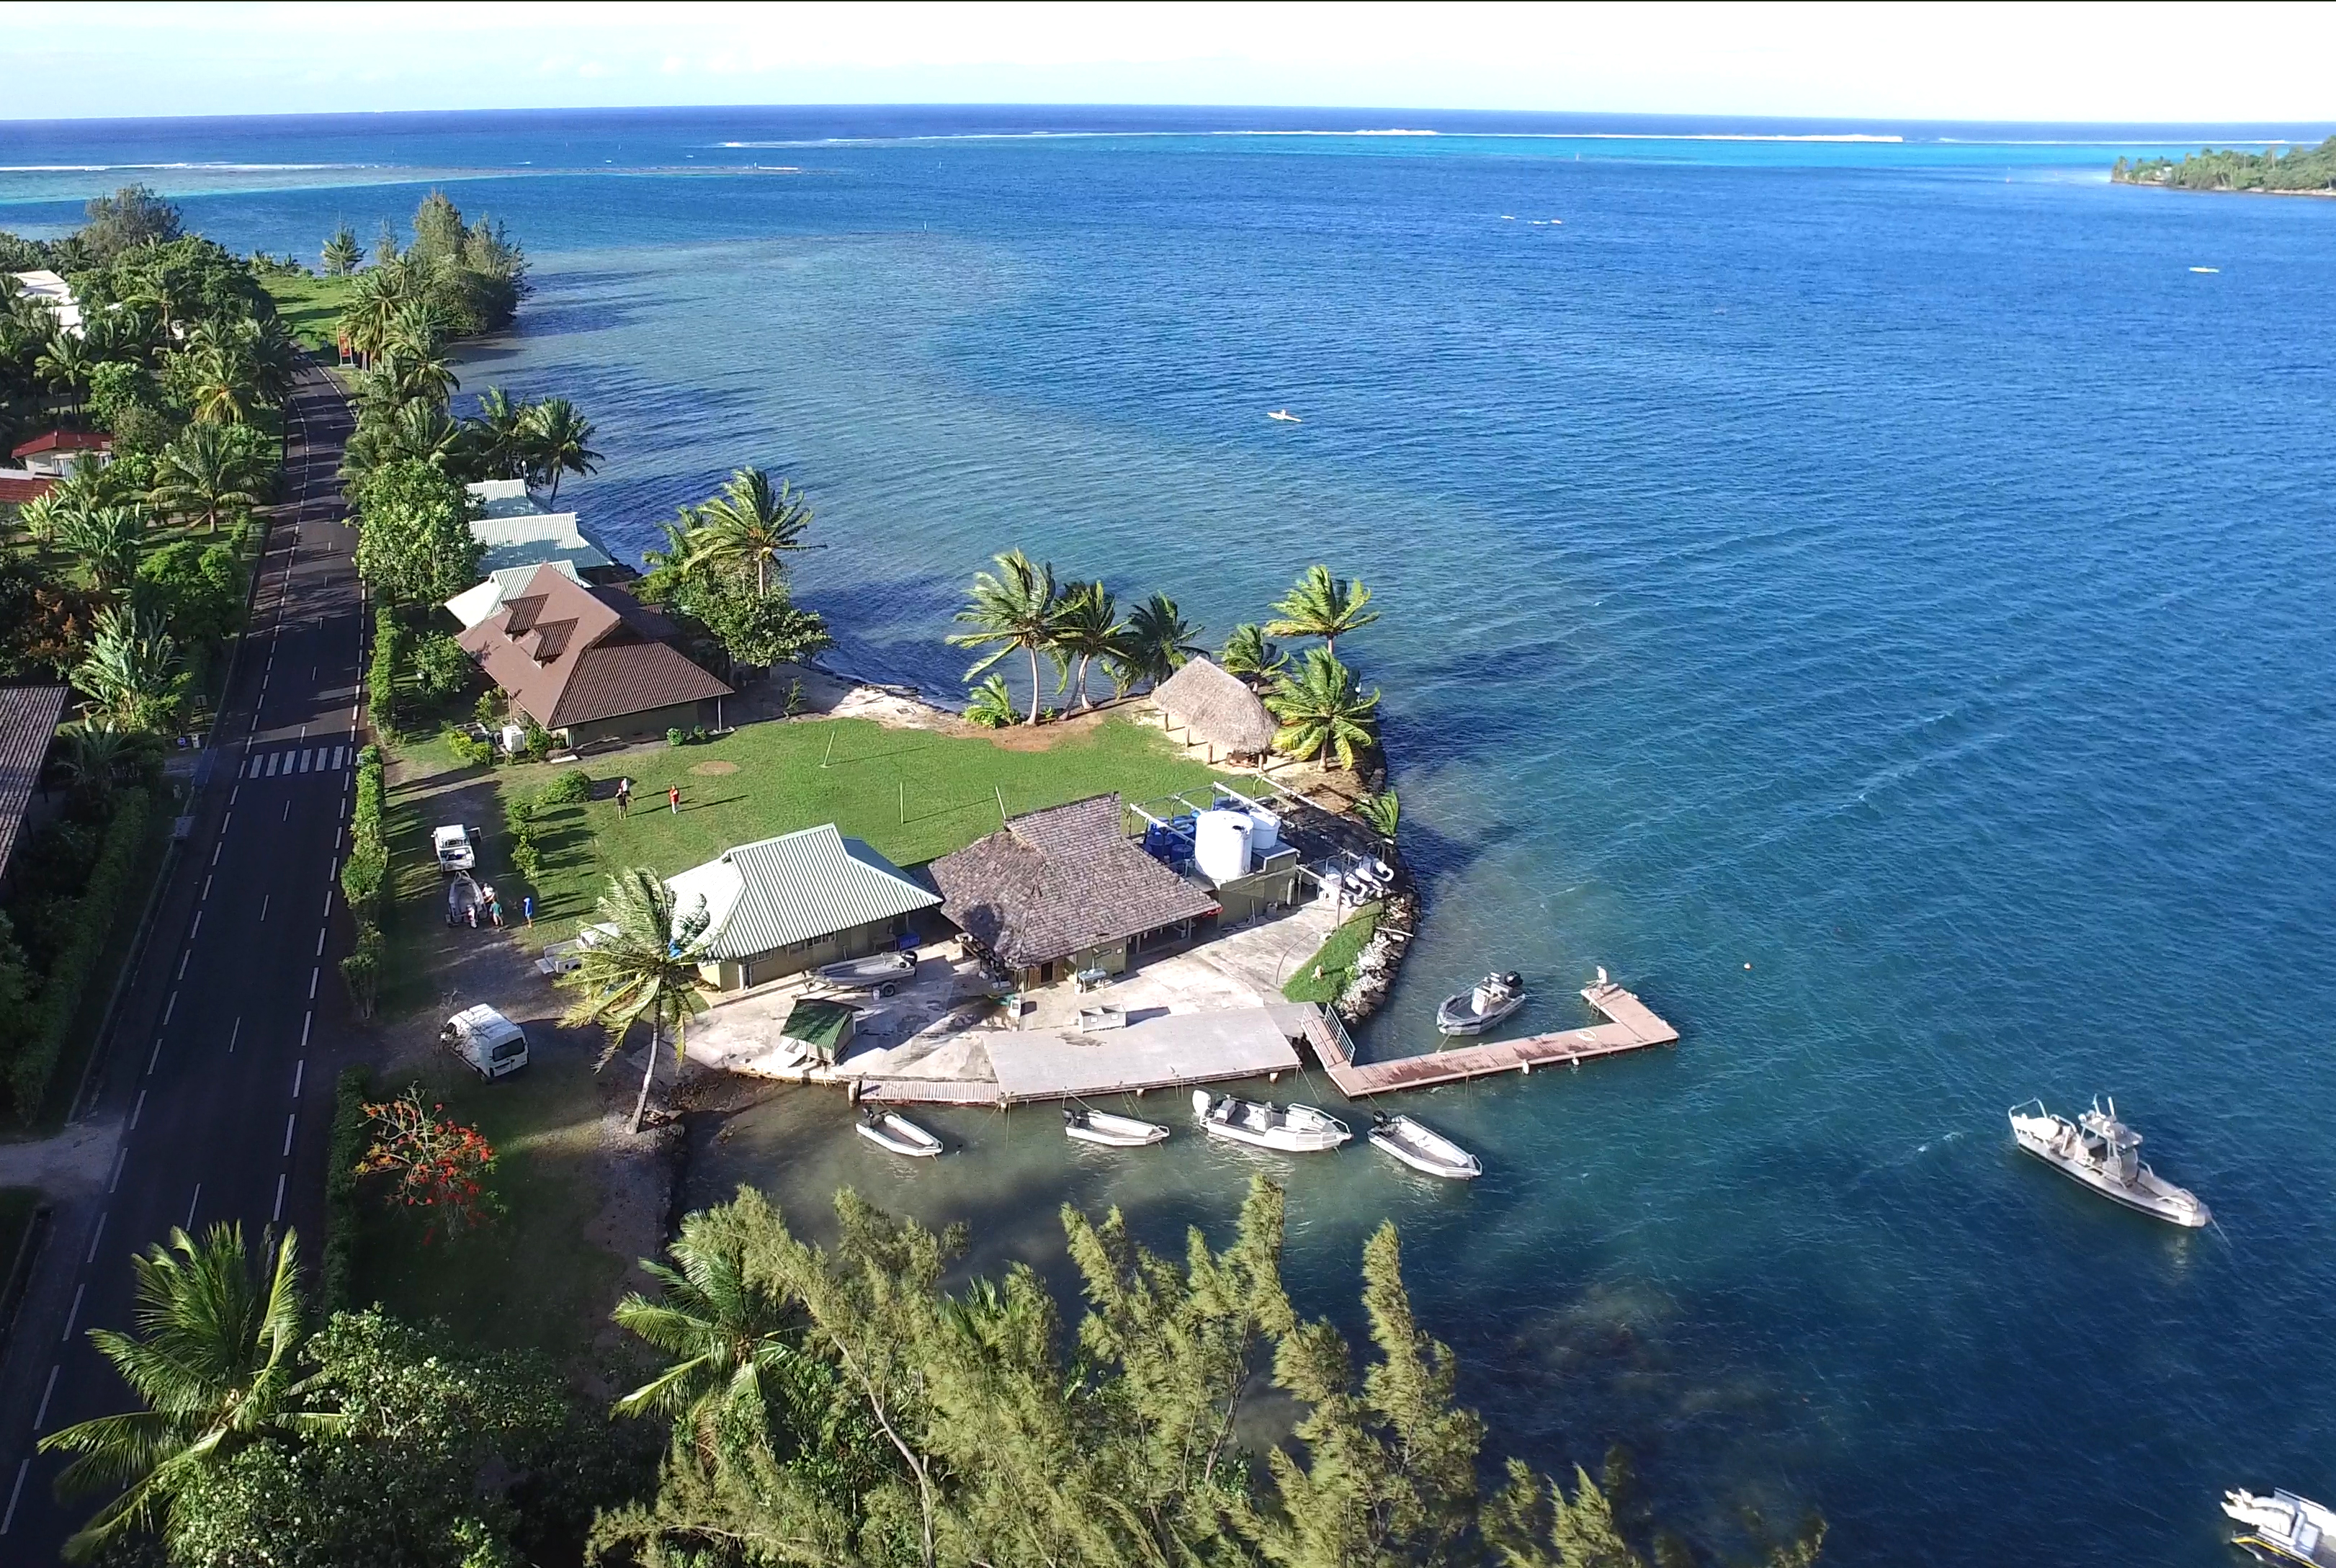 Richard B. Gump South Pacific Research Station. Moorea